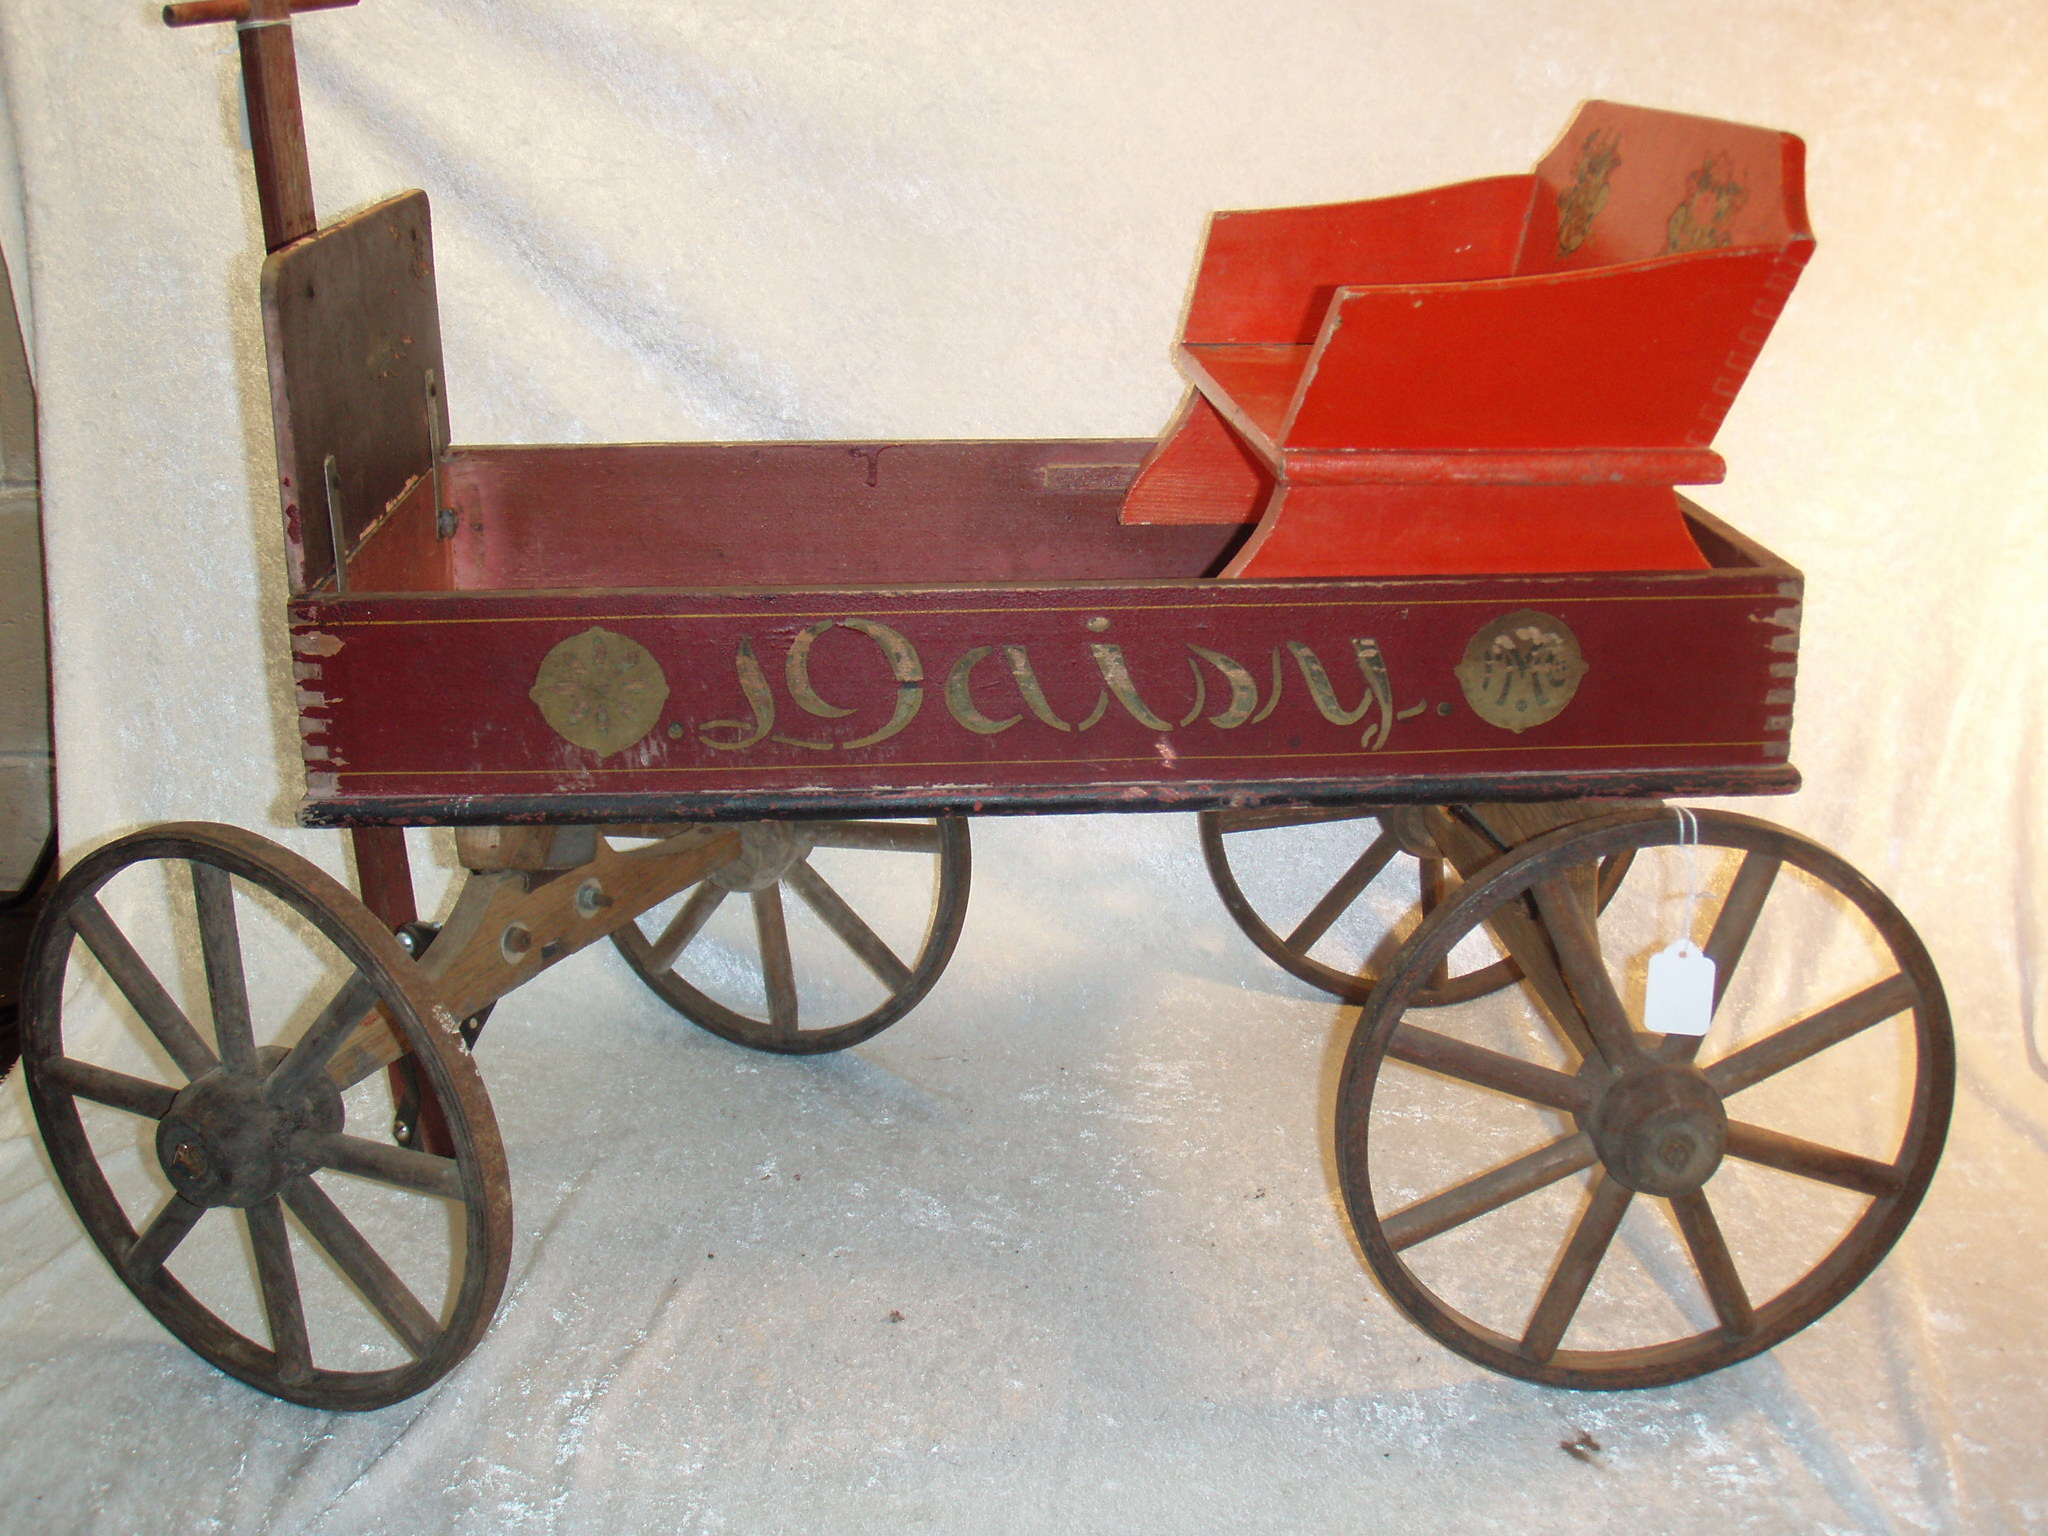 Early Antique South Paris Daisy Wagon For Sale Antiques